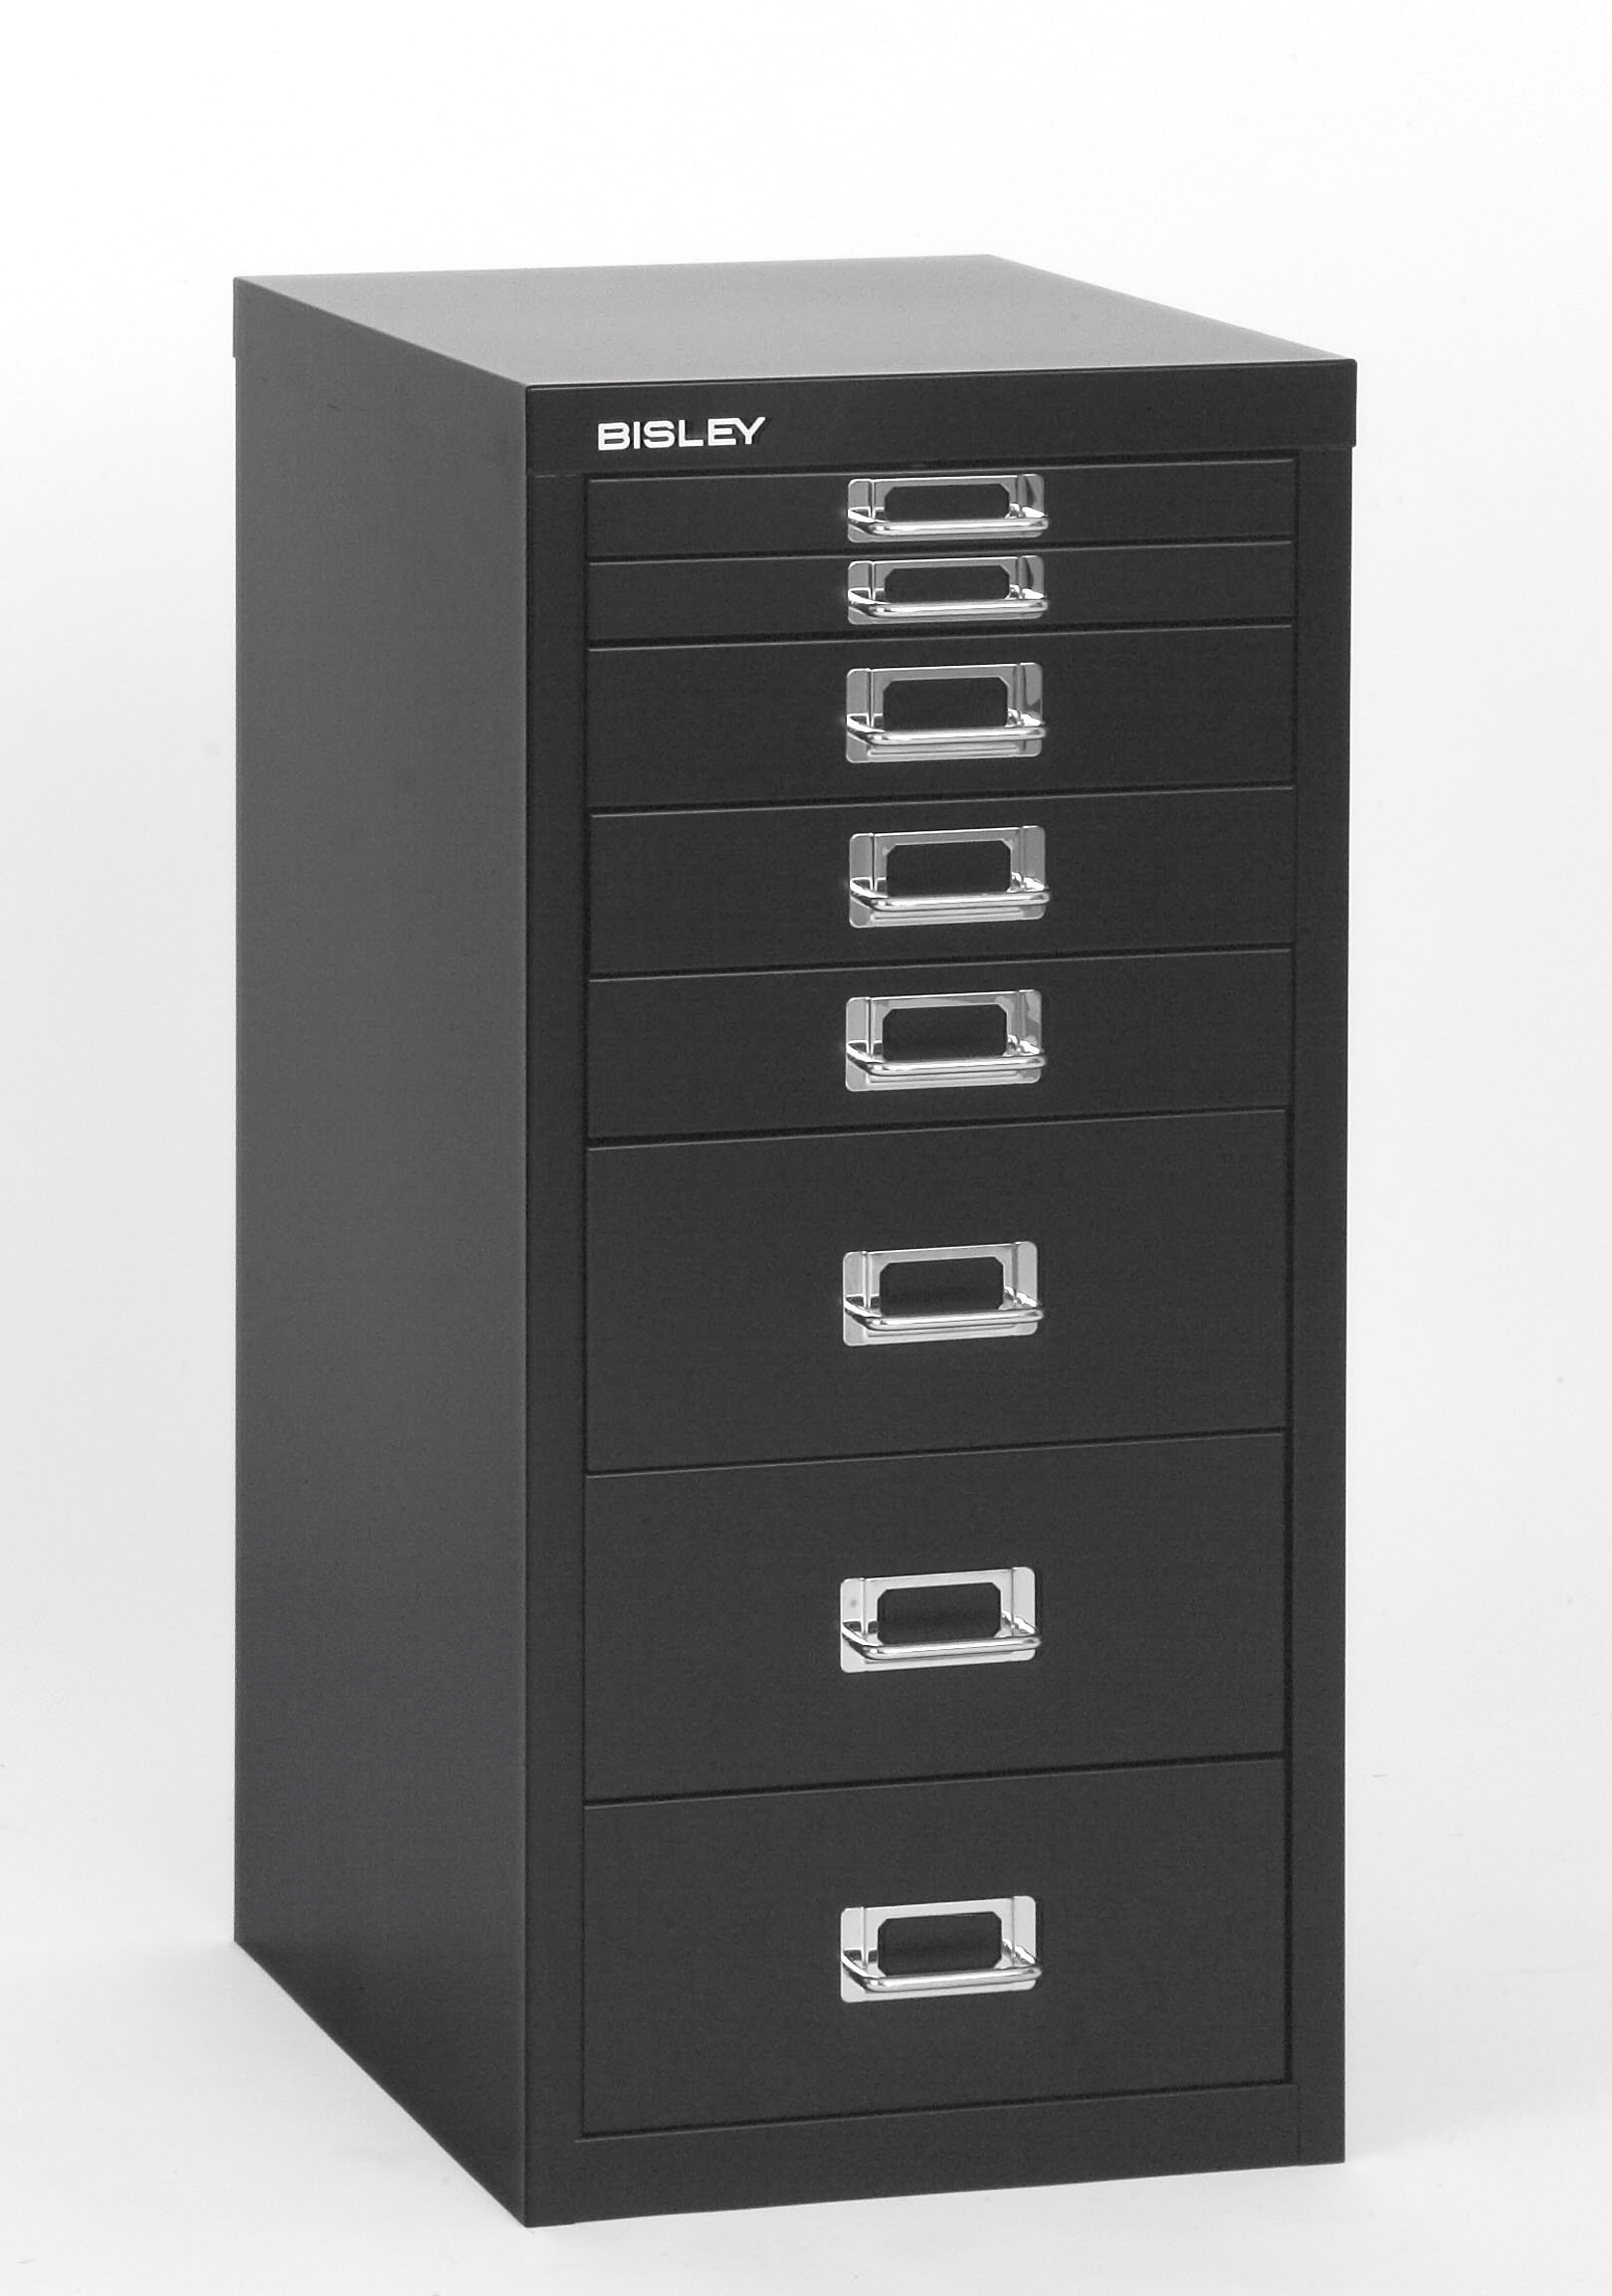 cabinet casters prod filing hinged on steel door product with bisley tall